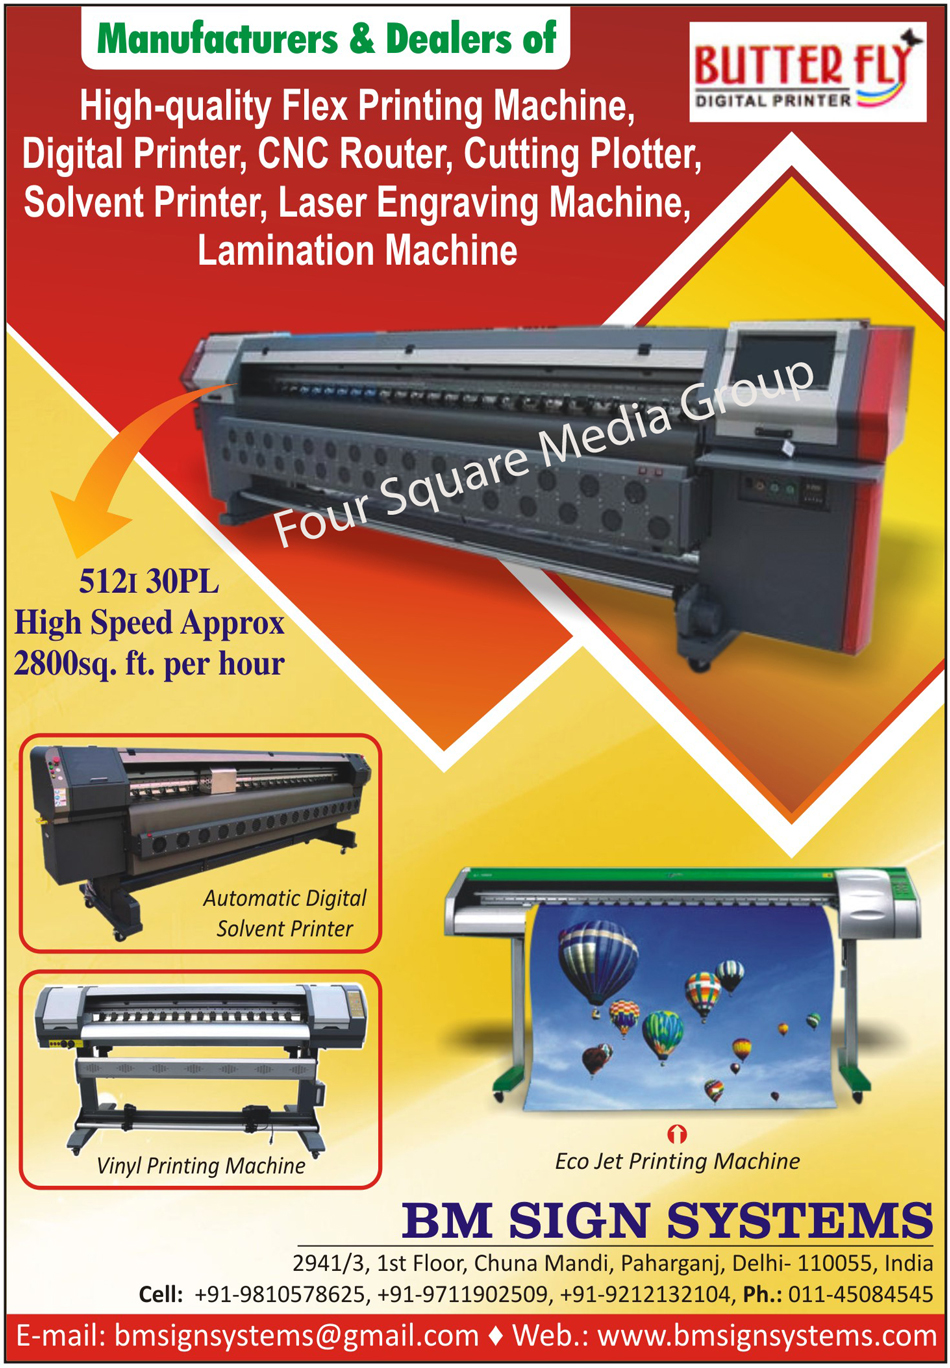 Flex Printing Machines, Digital Printers, CNC Routers, Cutting Plotters, Digital Solvent Printers, Laser Engraving Machines, Lamination Machines, Vinyl Printing Machines, Eco Jet Printing Machines